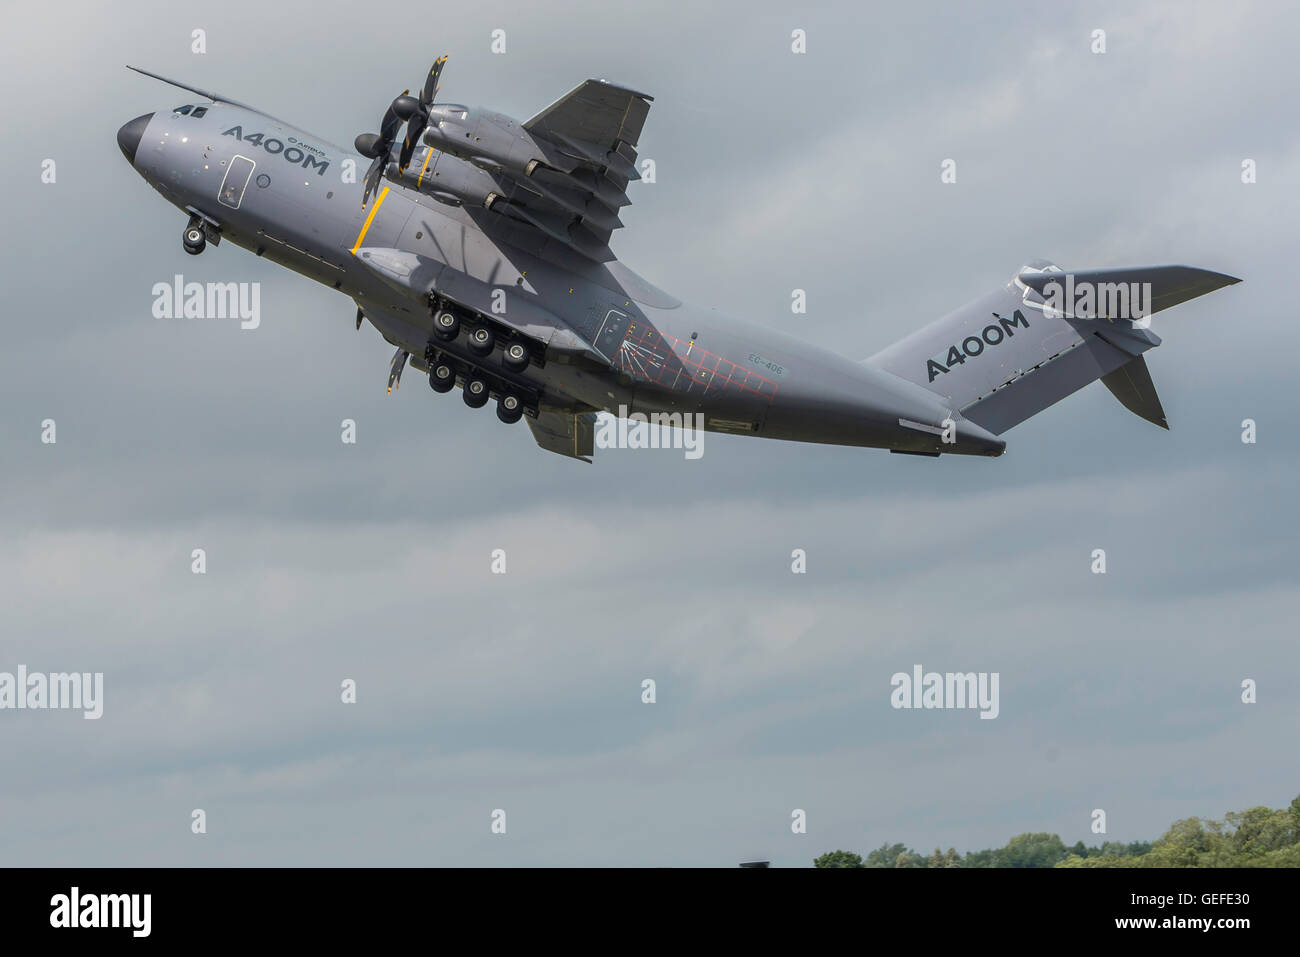 A400 RIAT Fairford England UK Air show flying display. - Stock Image